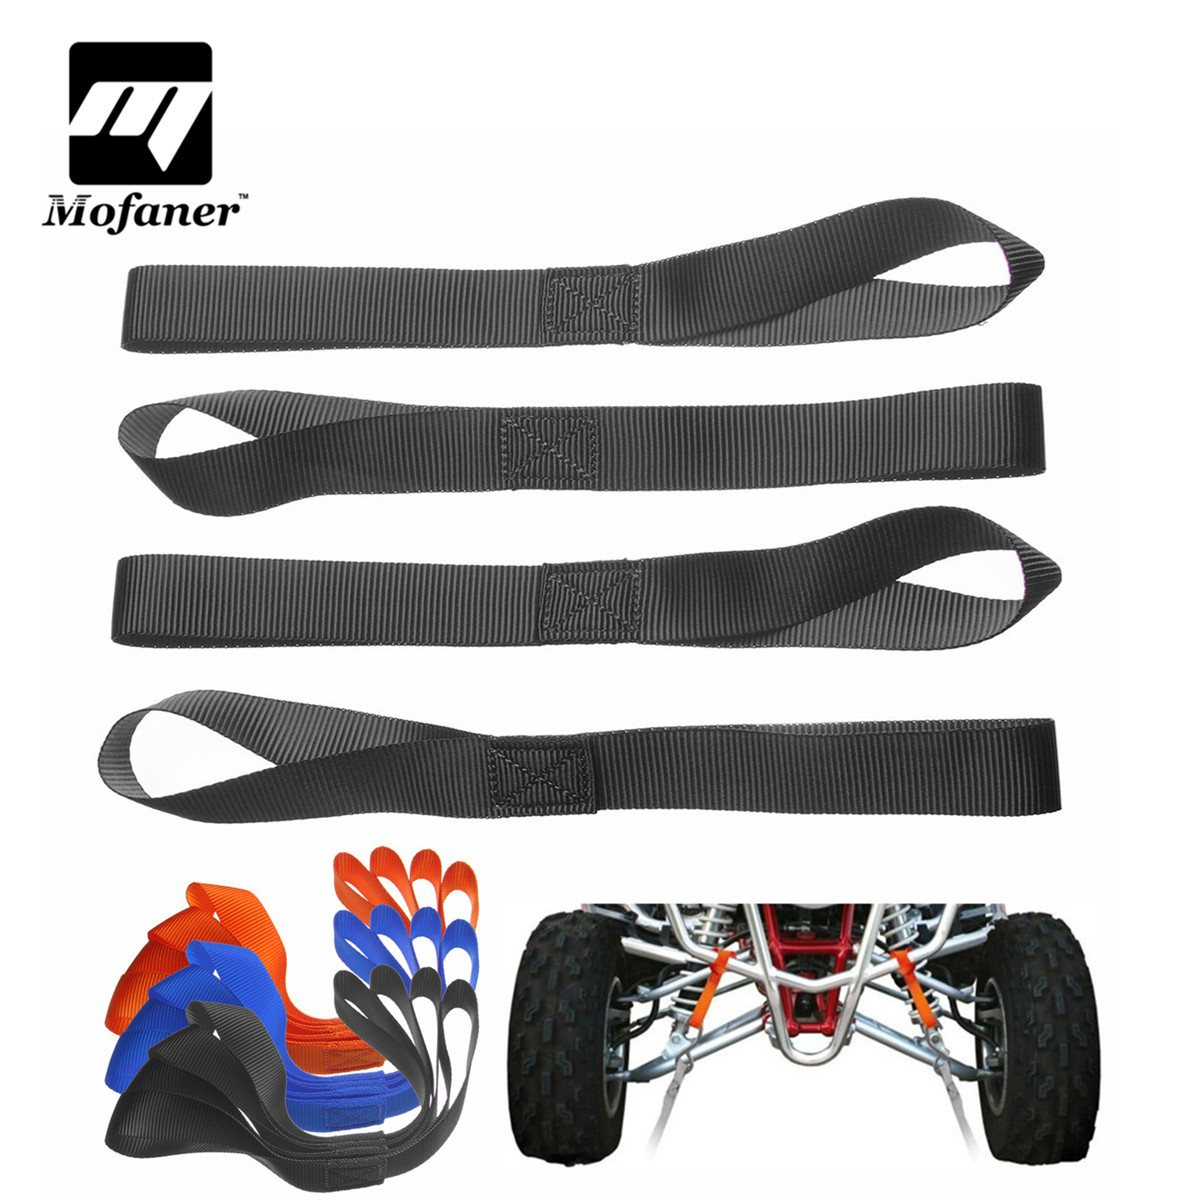 Mofaner 4 Pieces Ratchet Strap Tie Down Straps Soft Securing Loop Extension Tie For ATV Dirt Bike ...